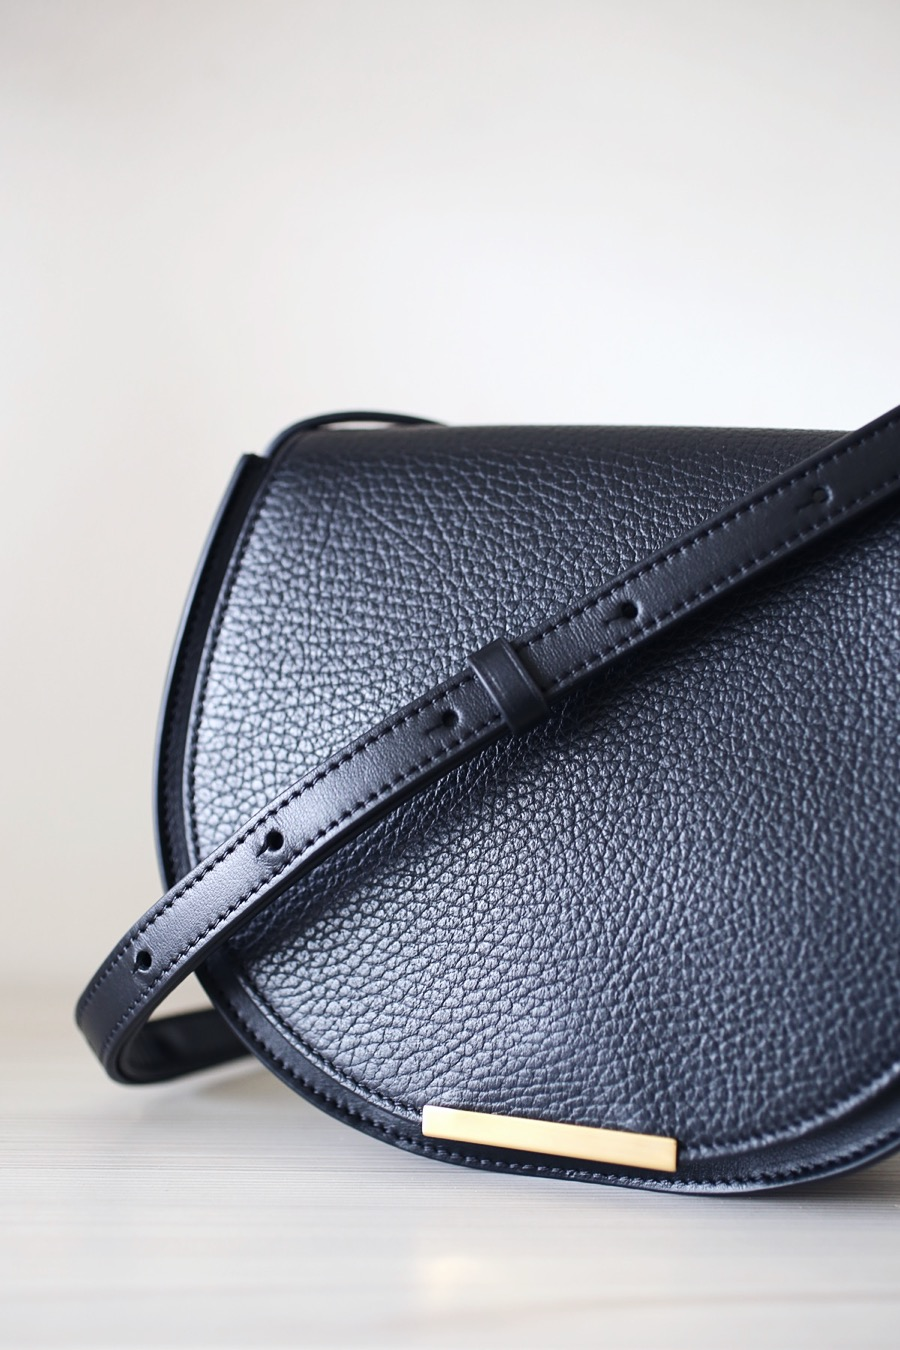 cuyana saddle bag via @citysage